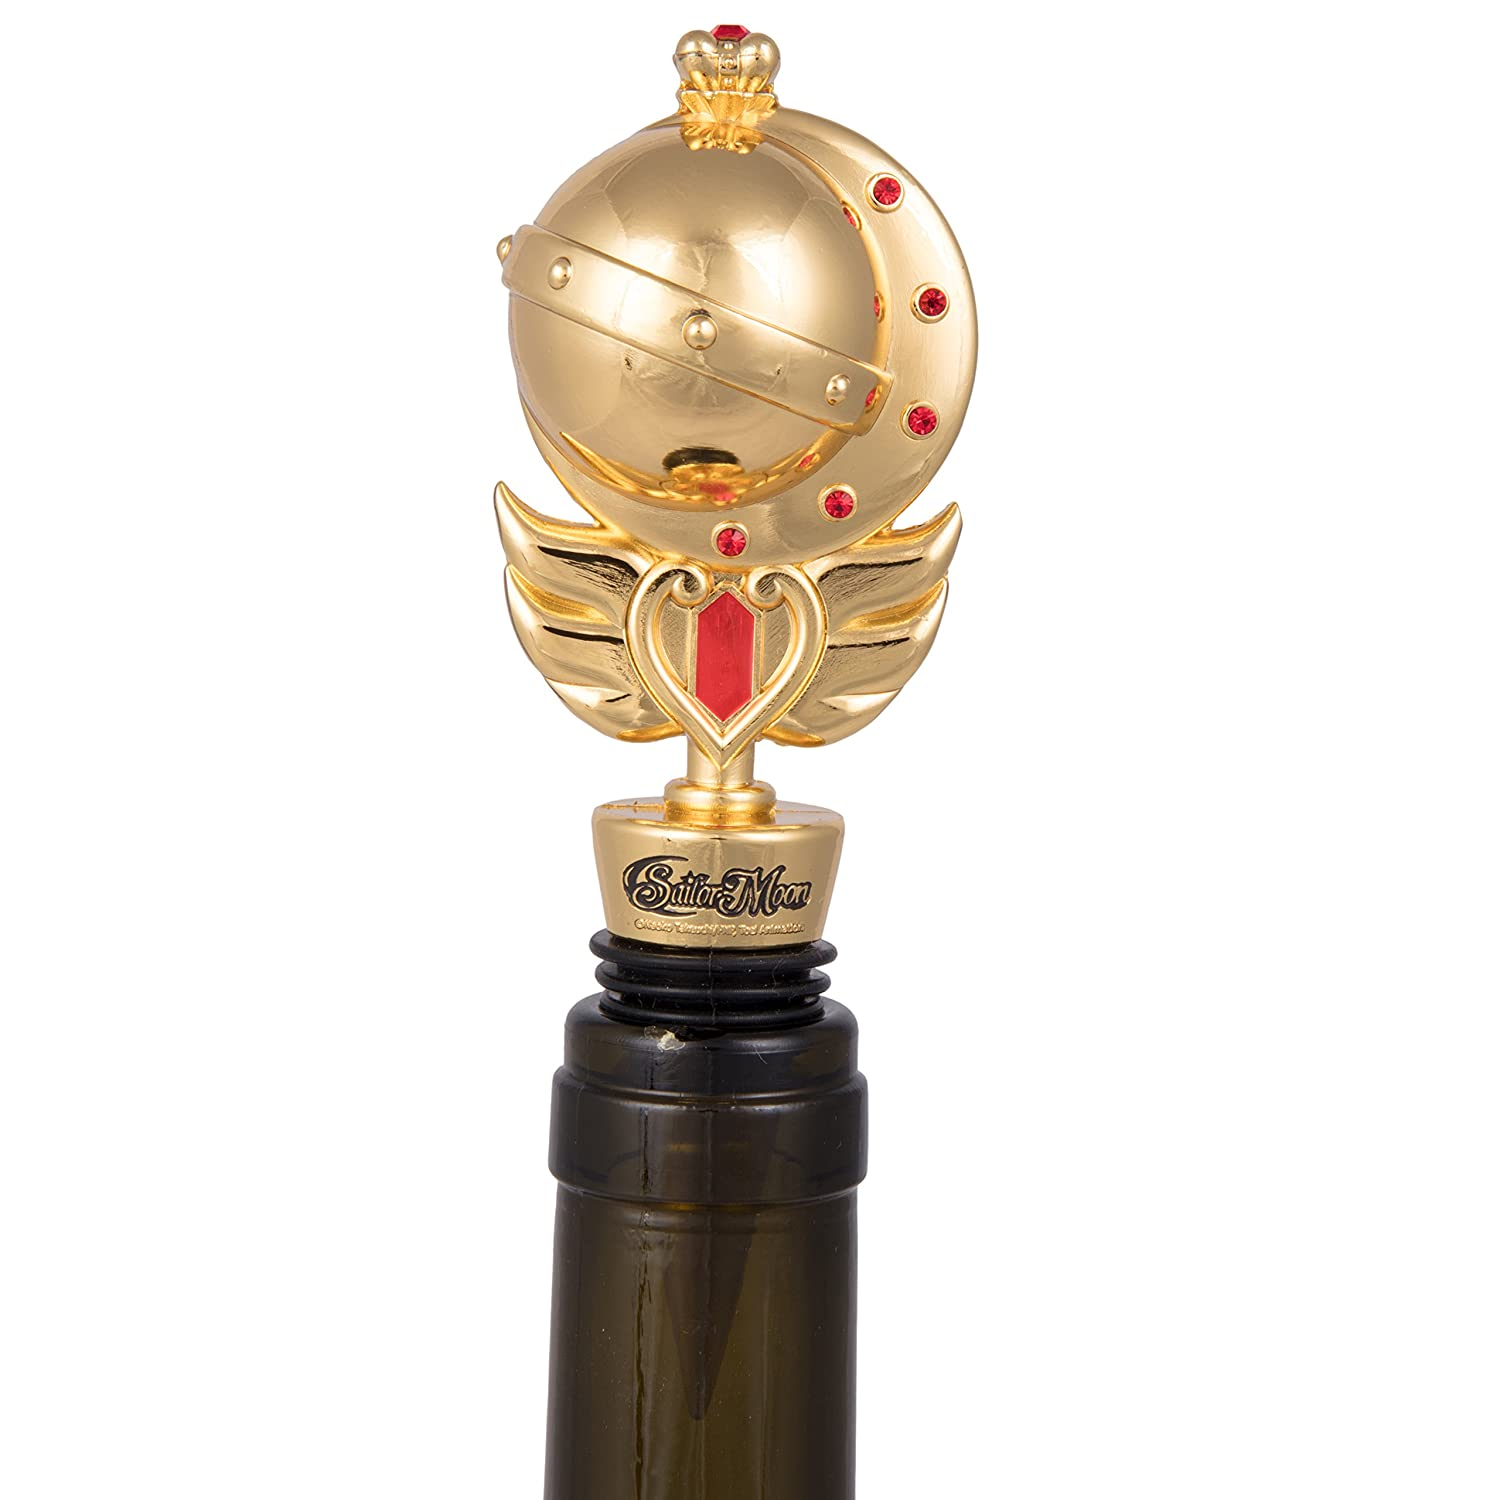 Sailor Moon Decorative Scepter Wine Stopper - Heavy Duty Metal Fits Any Bottle - Novelty Gift for the Anime Fan - Officially Licensed SCS Direct